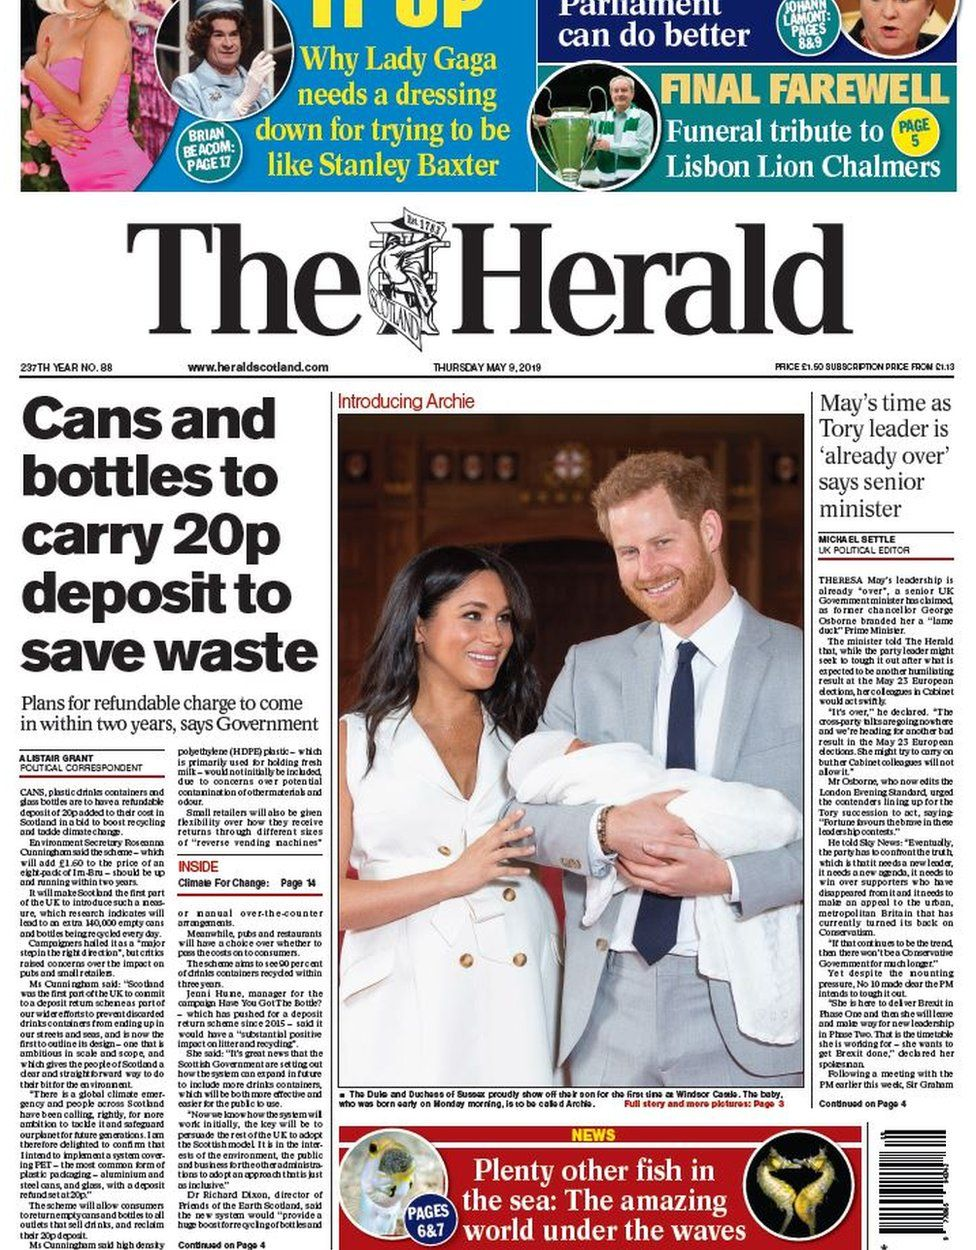 Scottish papers: 20p bottle deposit and 'adorable' Archie - BBC News